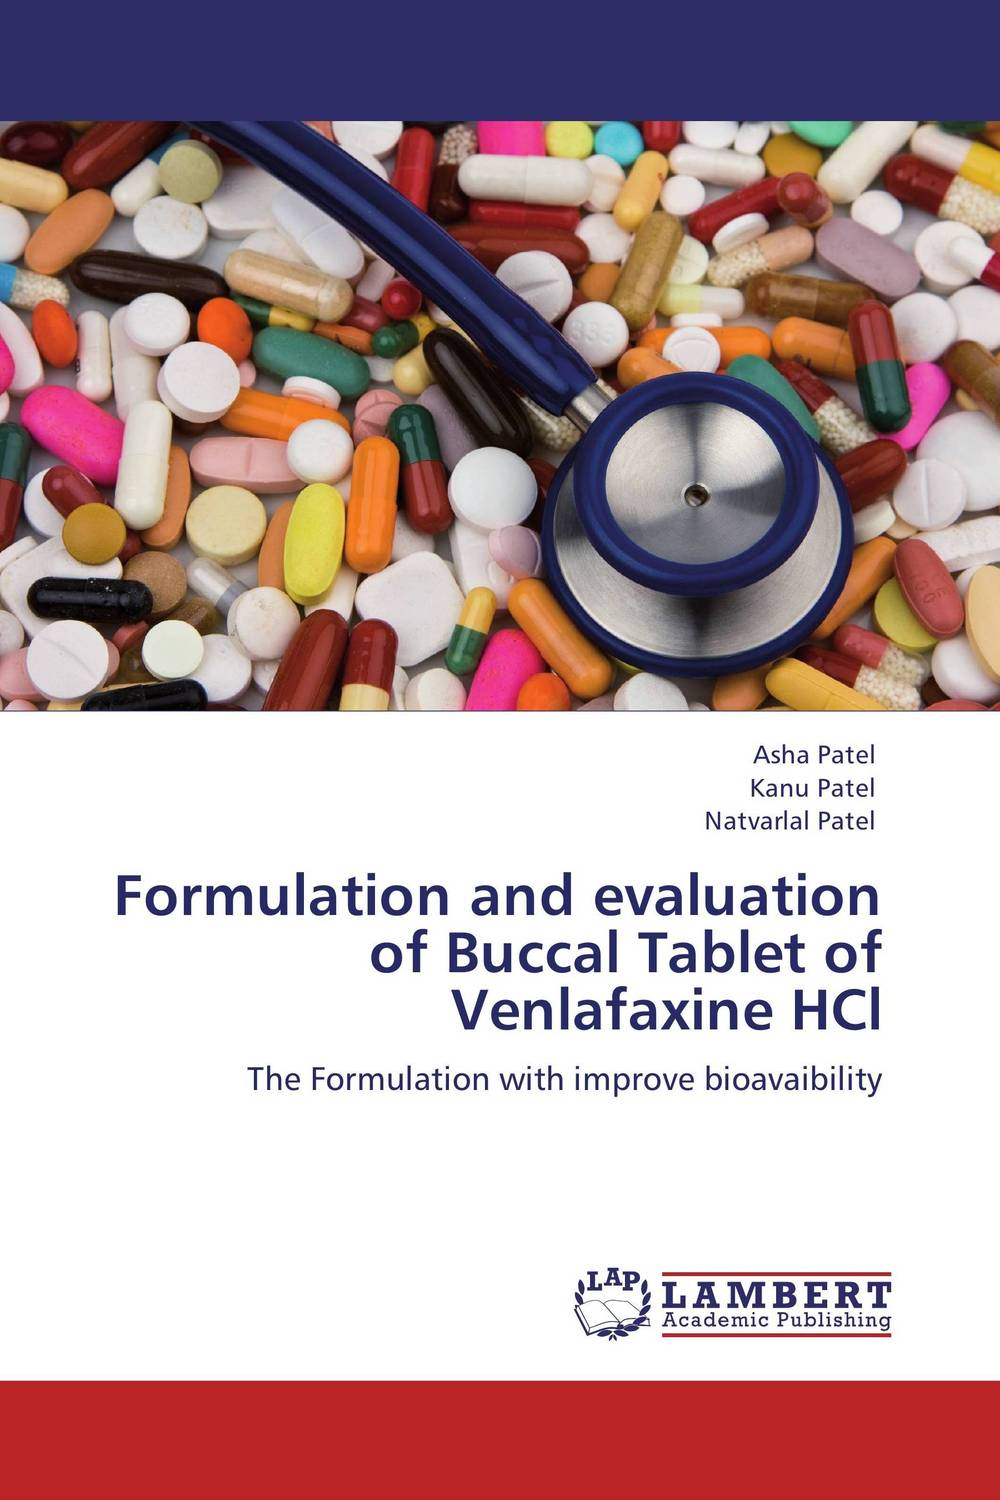 Formulation and evaluation of Buccal Tablet of Venlafaxine HCl formulation and evaluation of mucoadhesive buccal patches of labetalol page 8